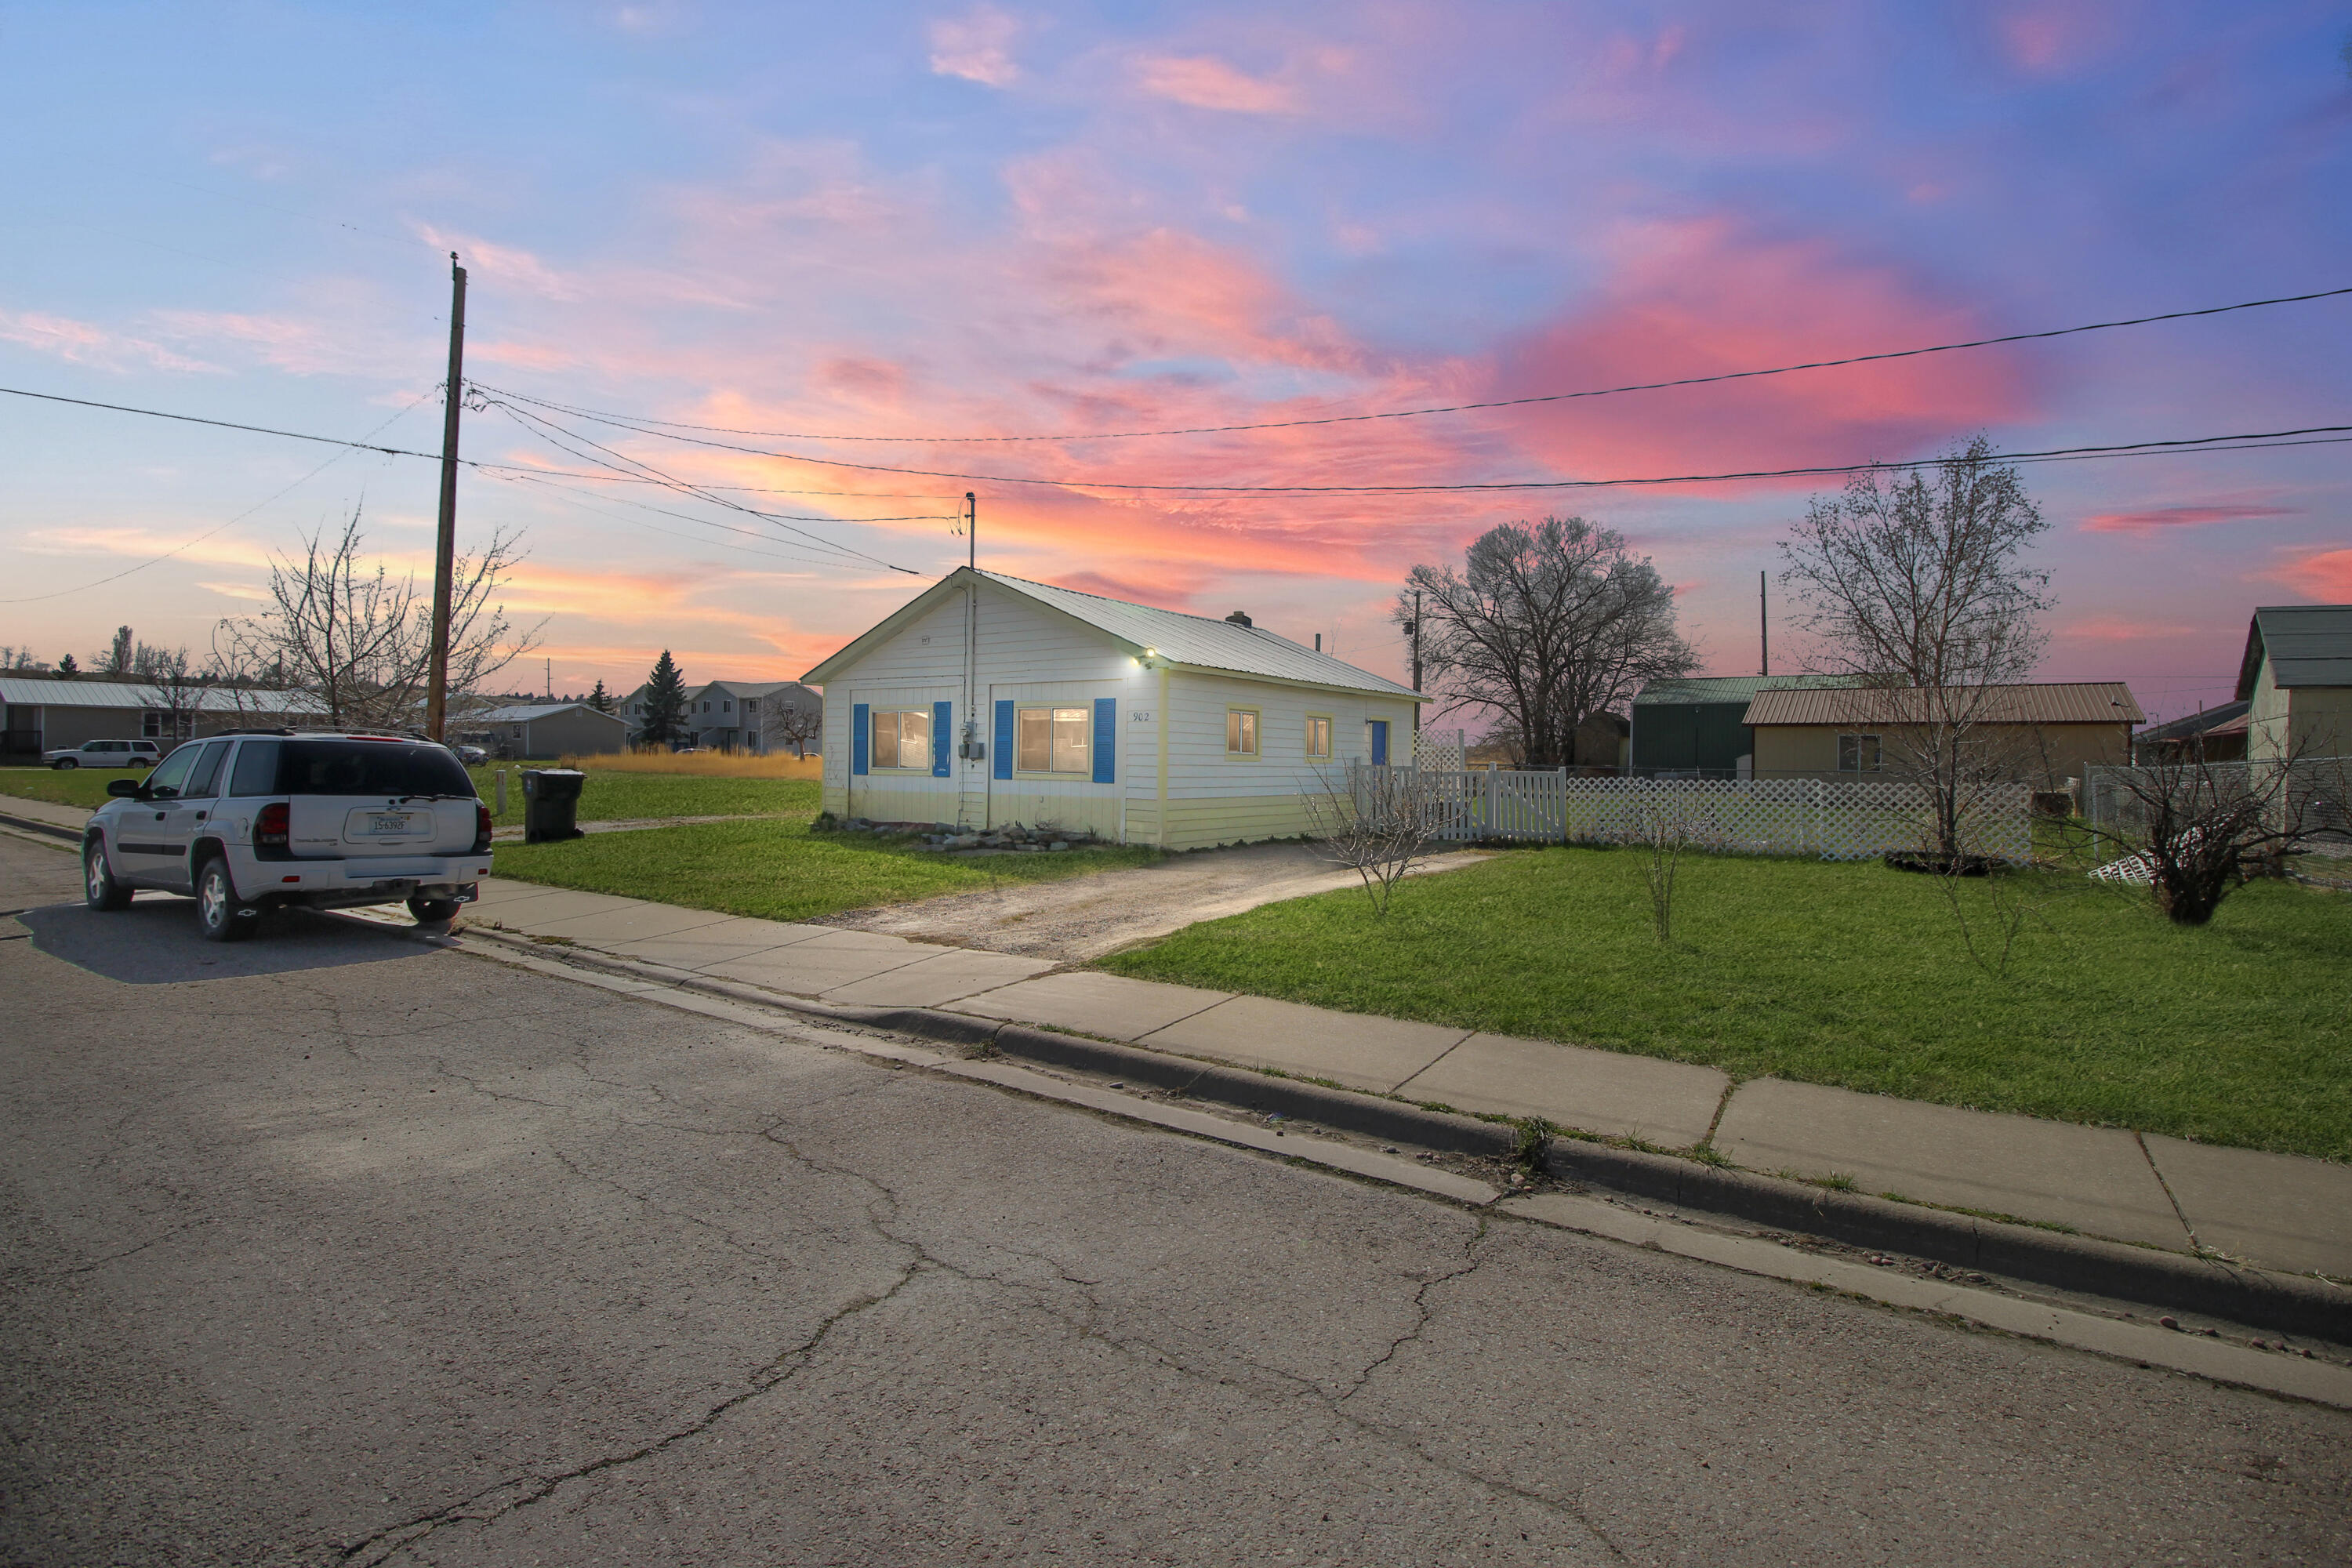 This charming one level home is the perfect starter home or rental property. It has 2 bedrooms, 1 bathroom, and a large fenced back yard for privacy and RV storage. This place is move in ready! All information deemed reliable but not guaranteed. Buyer and/or Buyer's Agent to Verify All Info.